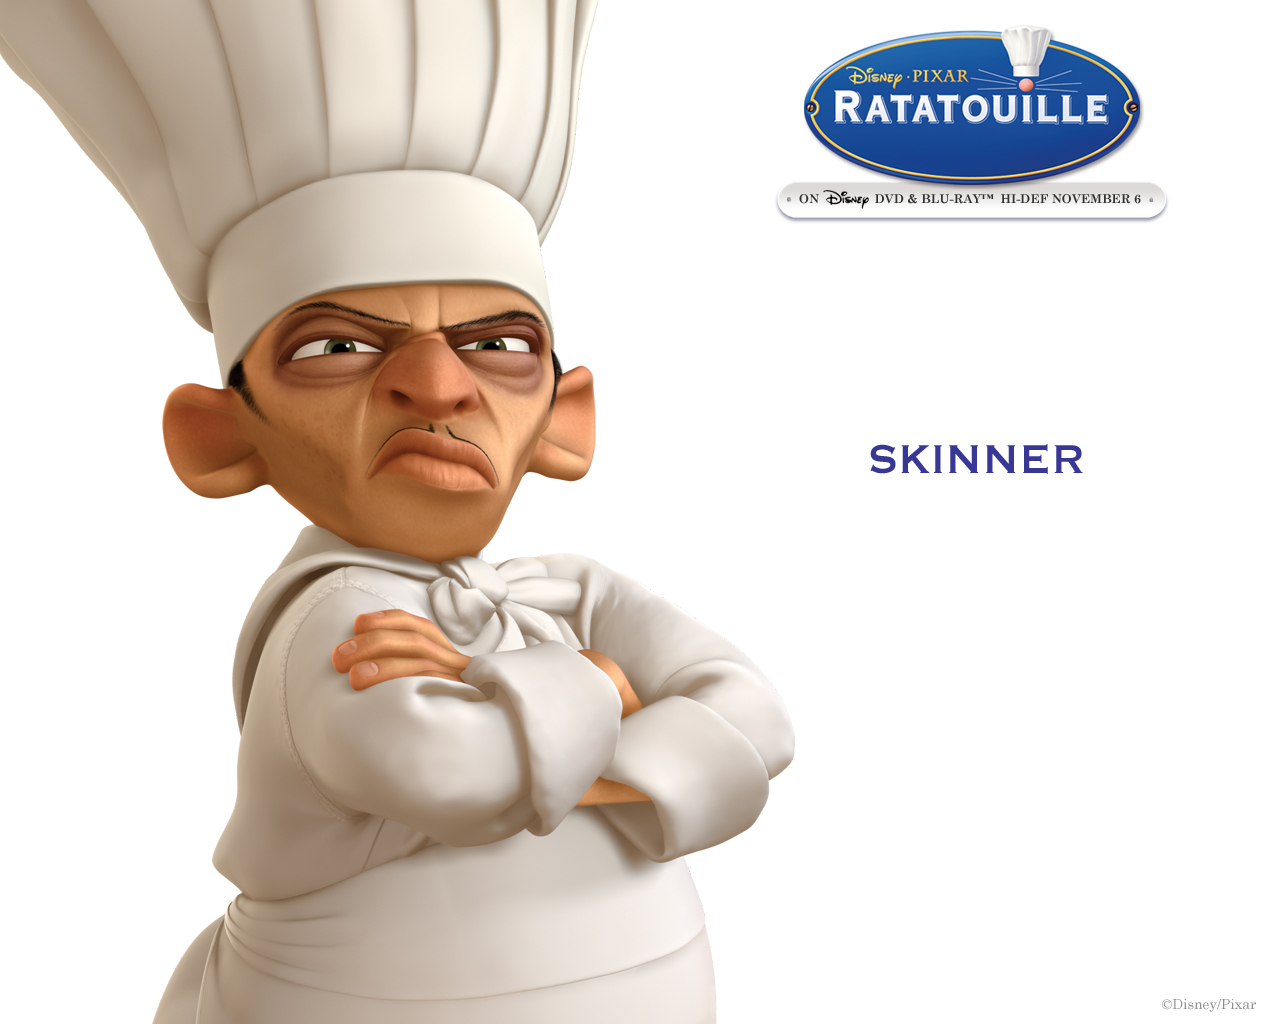 Chef Skinner | Disney Wiki | FANDOM powered by Wikia